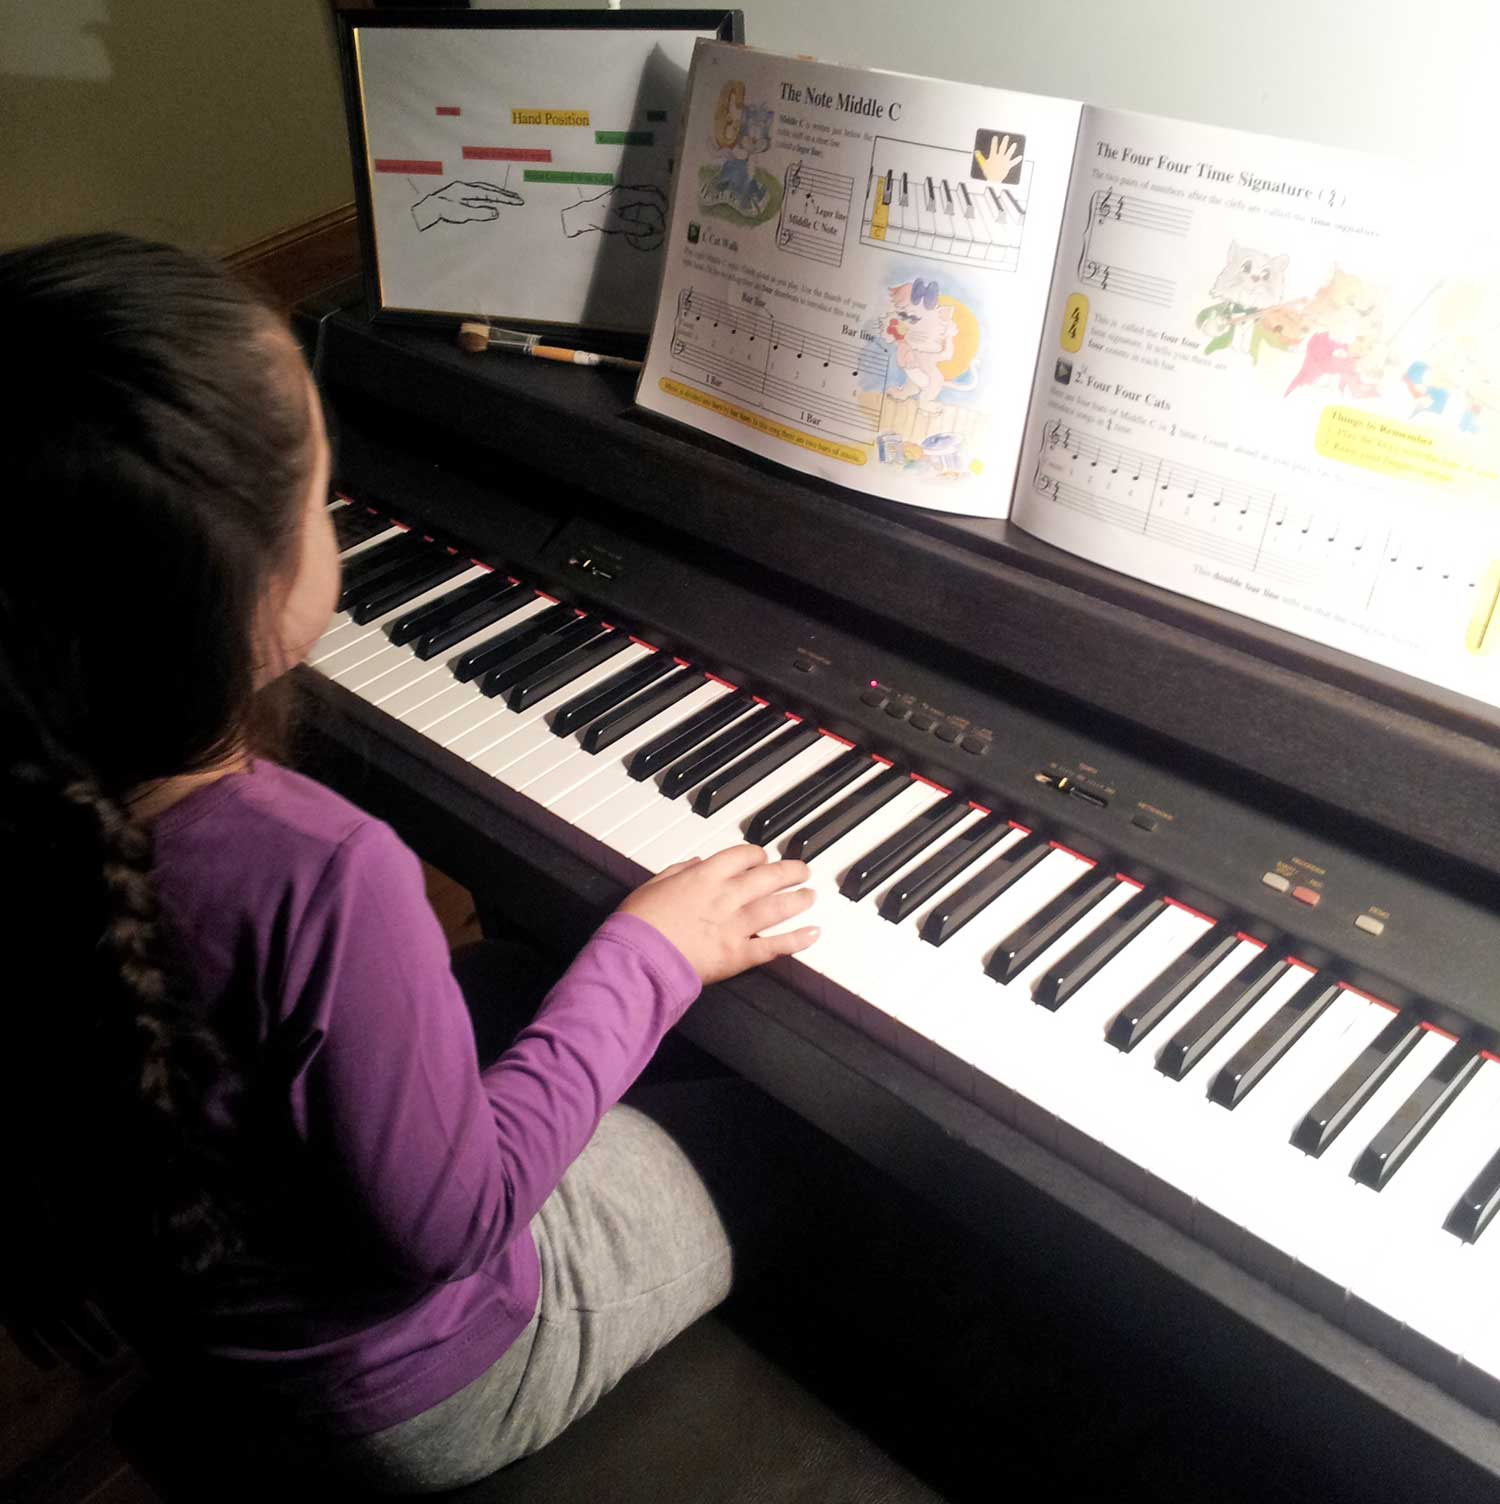 Tookii things to do with kids learning piano one of the activities for kids